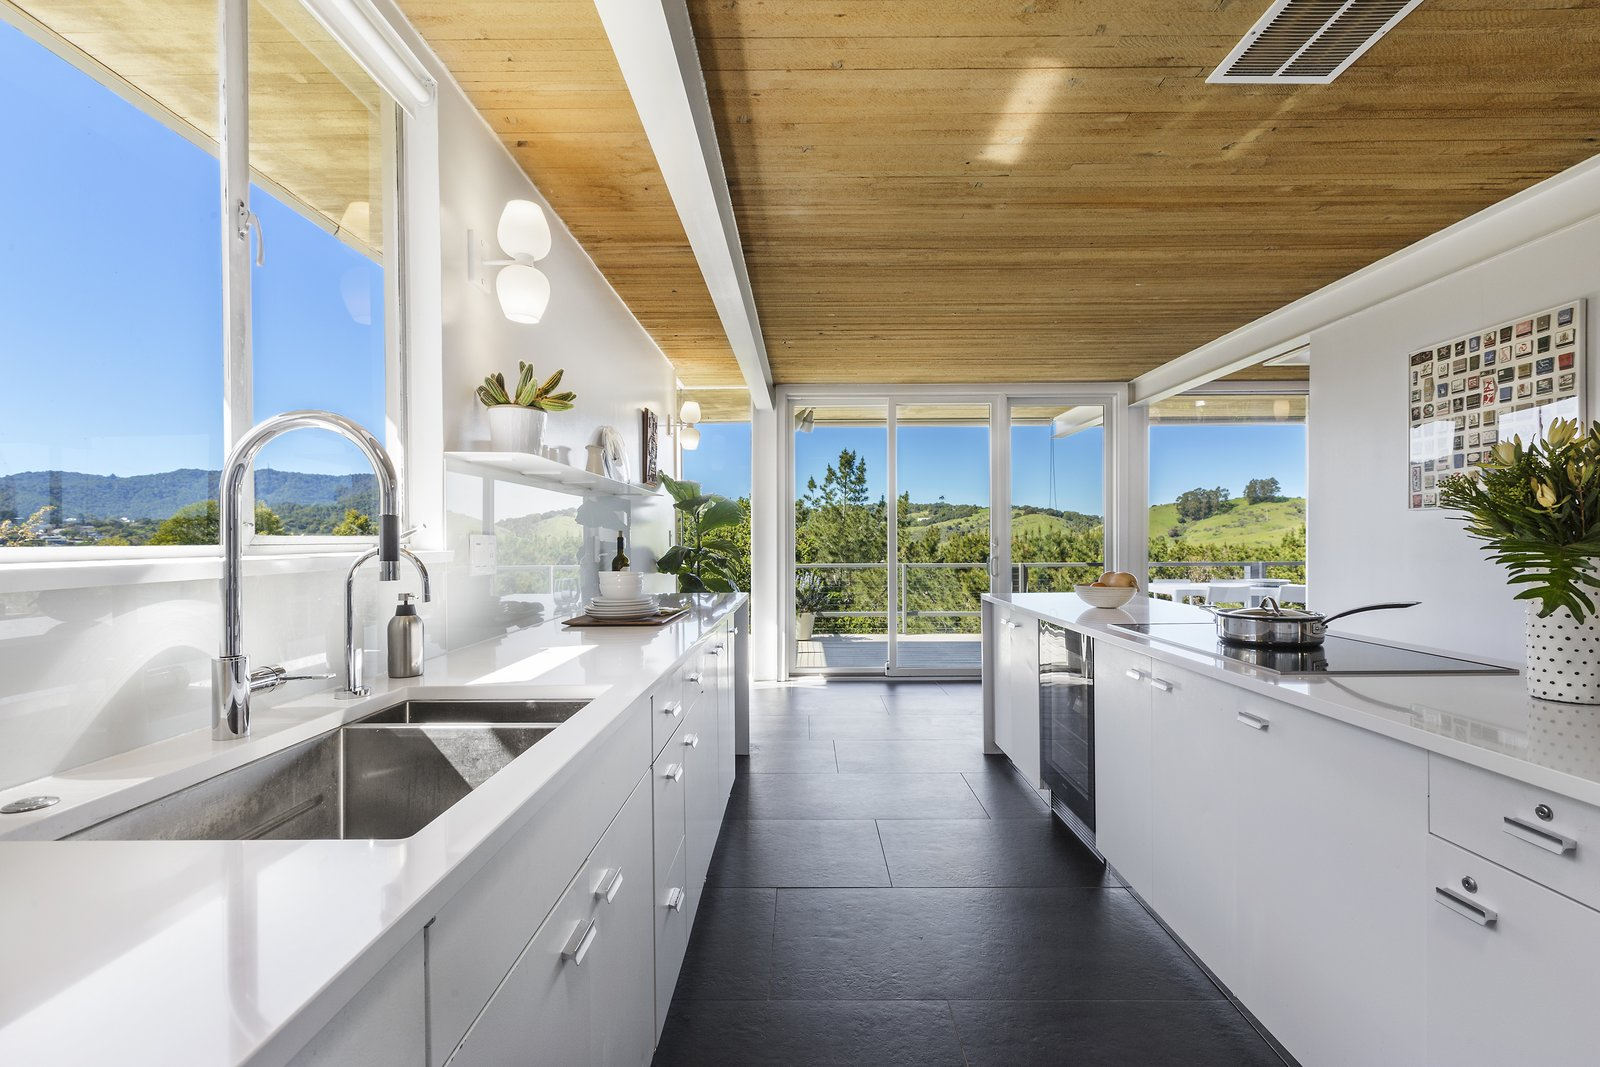 Kitchen, Wall, White, Open, Cooktops, Undermount, and Beverage Center  Best Kitchen Beverage Center Wall Photos from Spend the Night in an Iconic Case Study House North of San Francisco